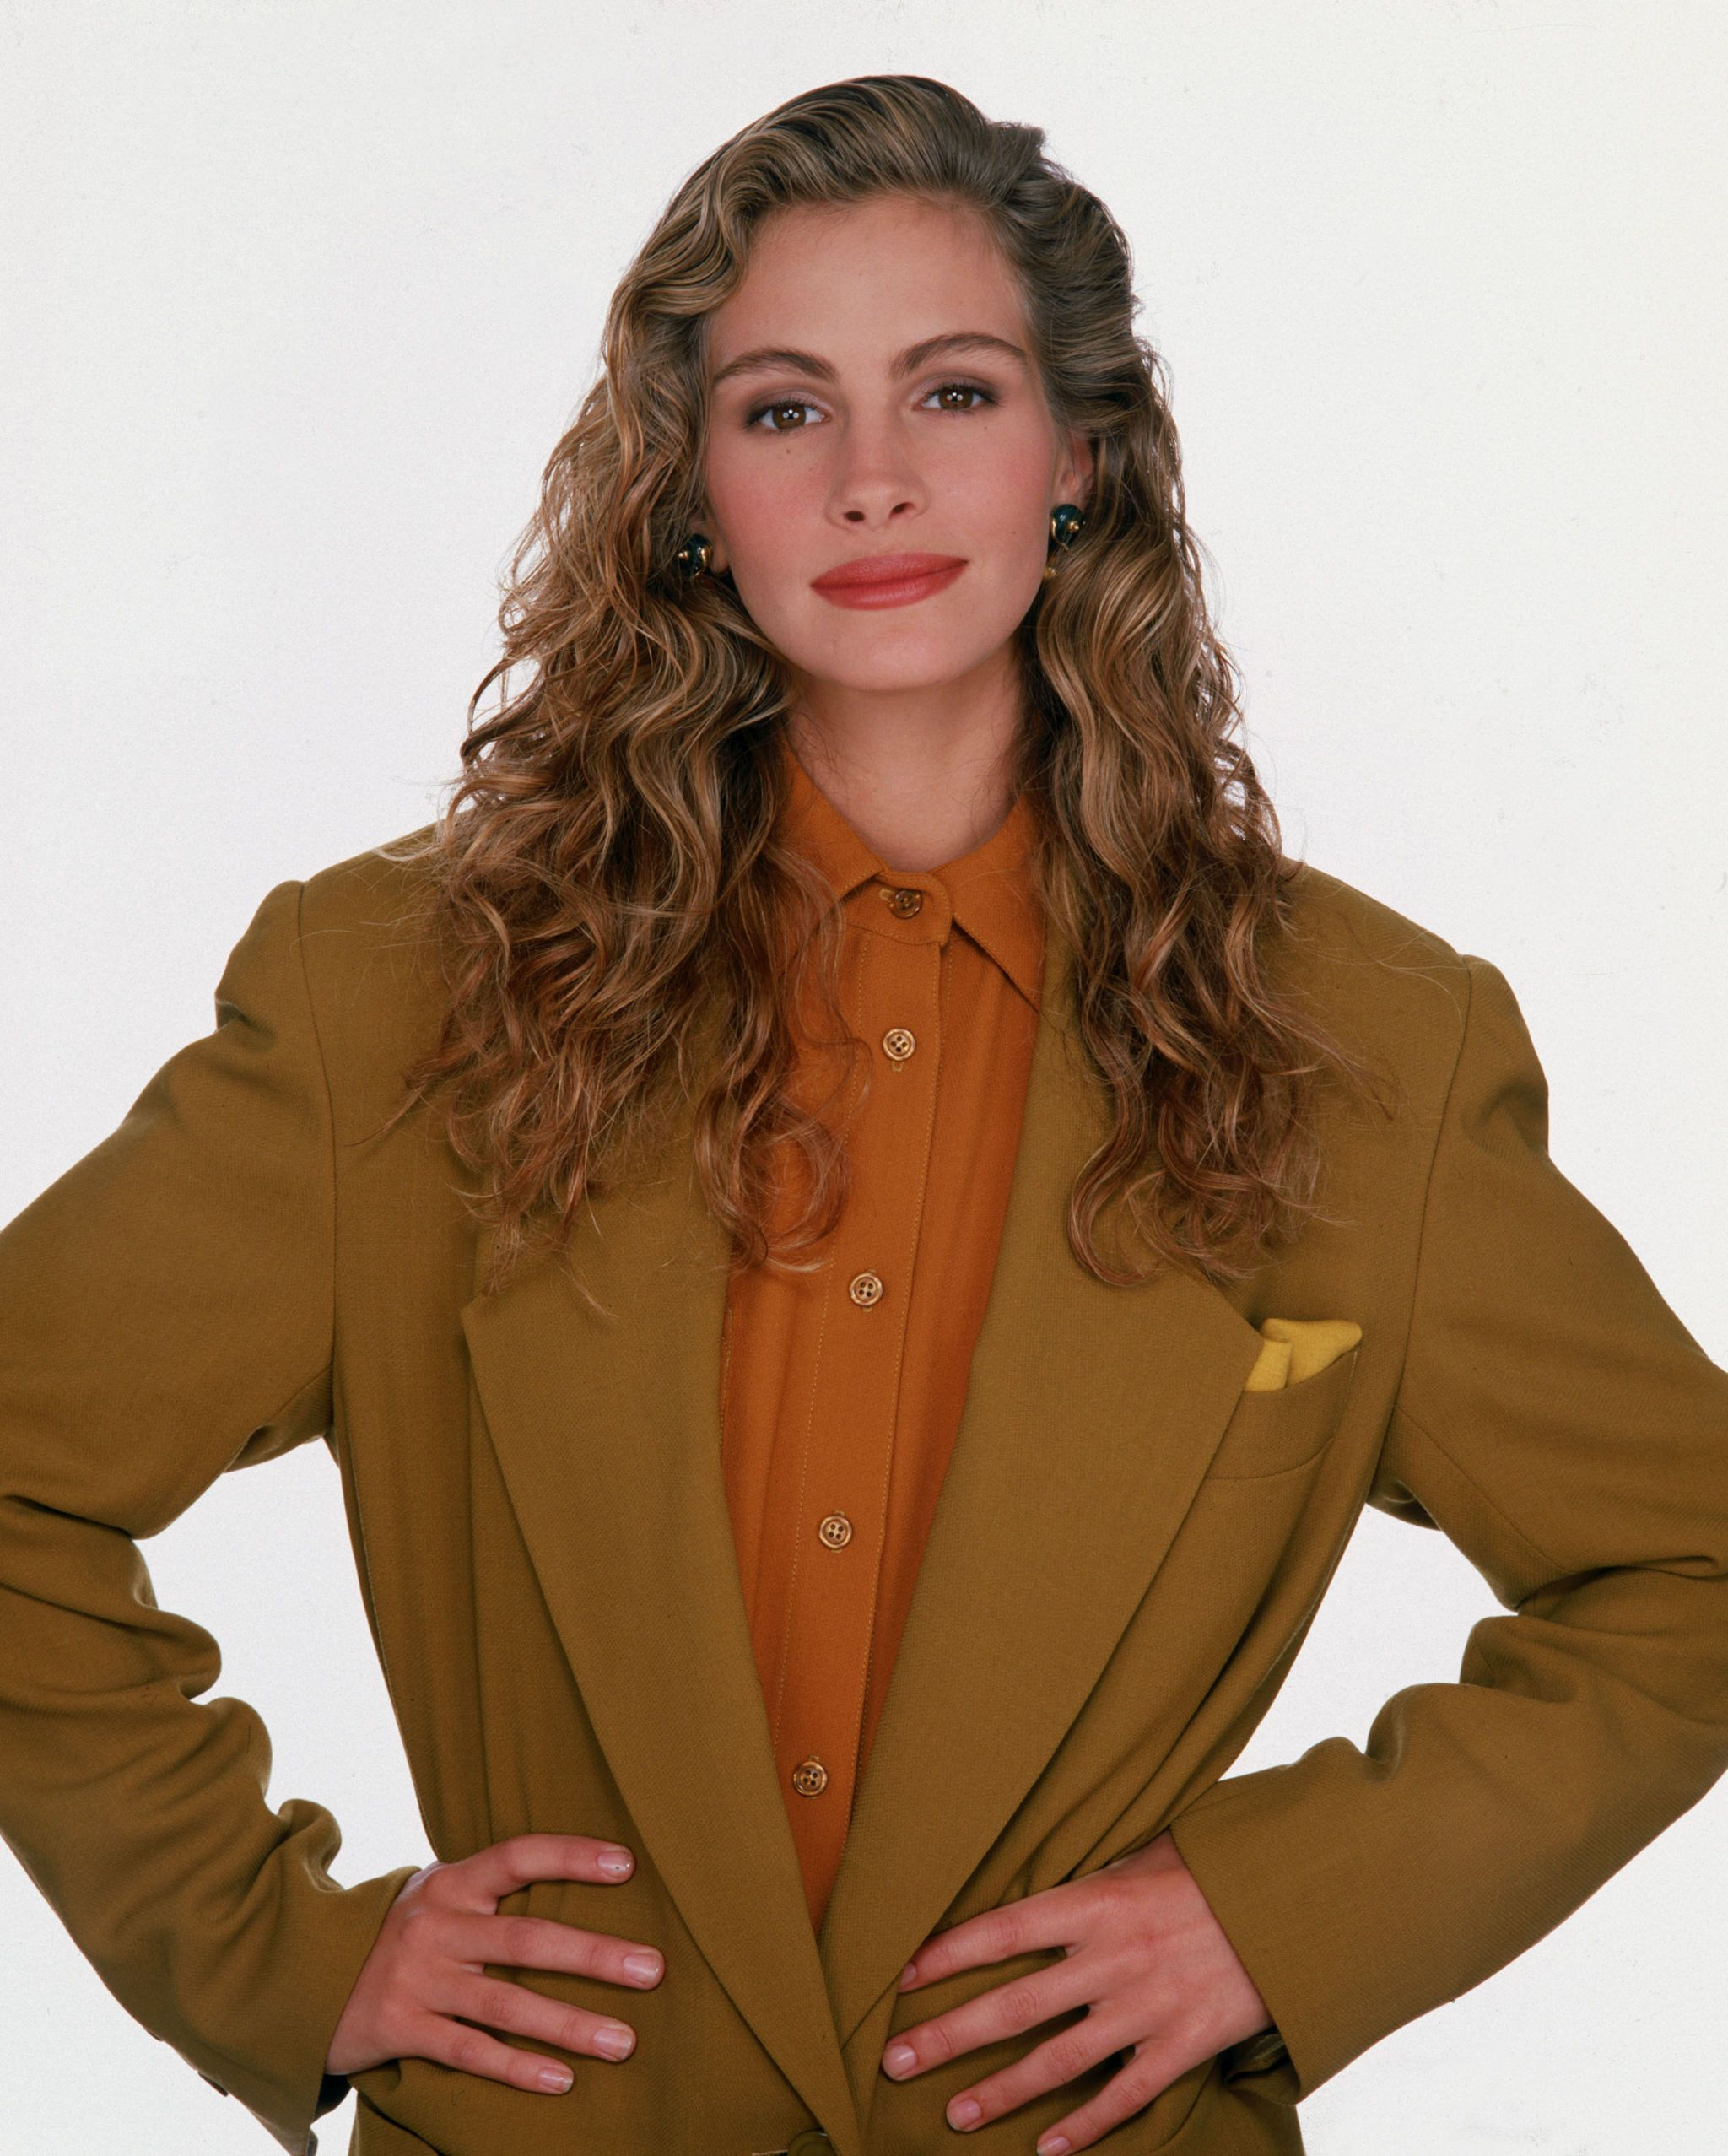 20 Best 80 s Fashion Trends   Greatest Celebrity 80 s Style Moments  p That feeling when your shirt  massively oversized blazer  nbsp hair